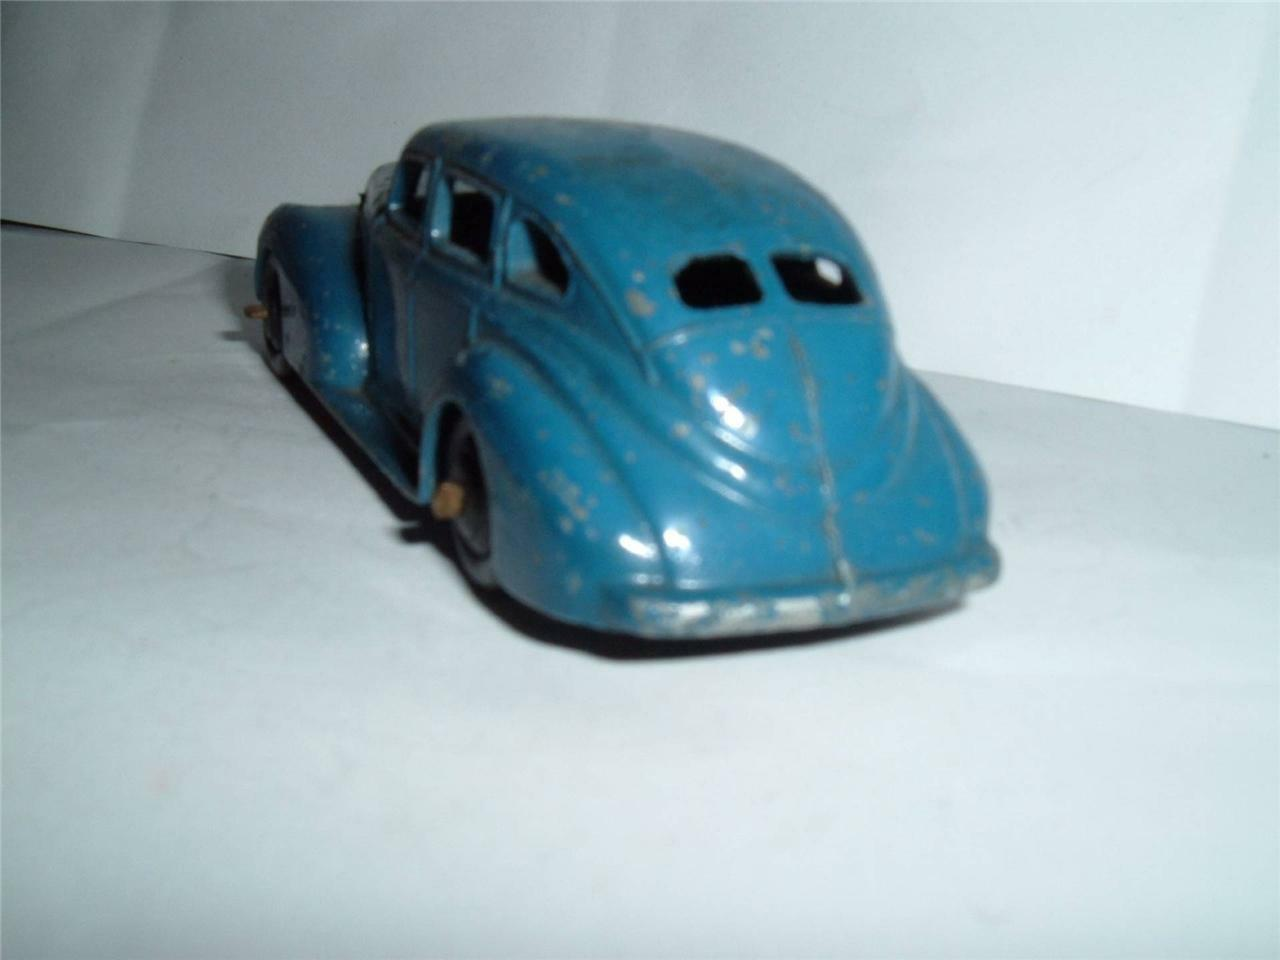 DINKY TOYS 39E CHRYSLER ROYALE ROYALE ROYALE SEDAN IN USED CONDITION VINTAGE SEE PICS 6bf667